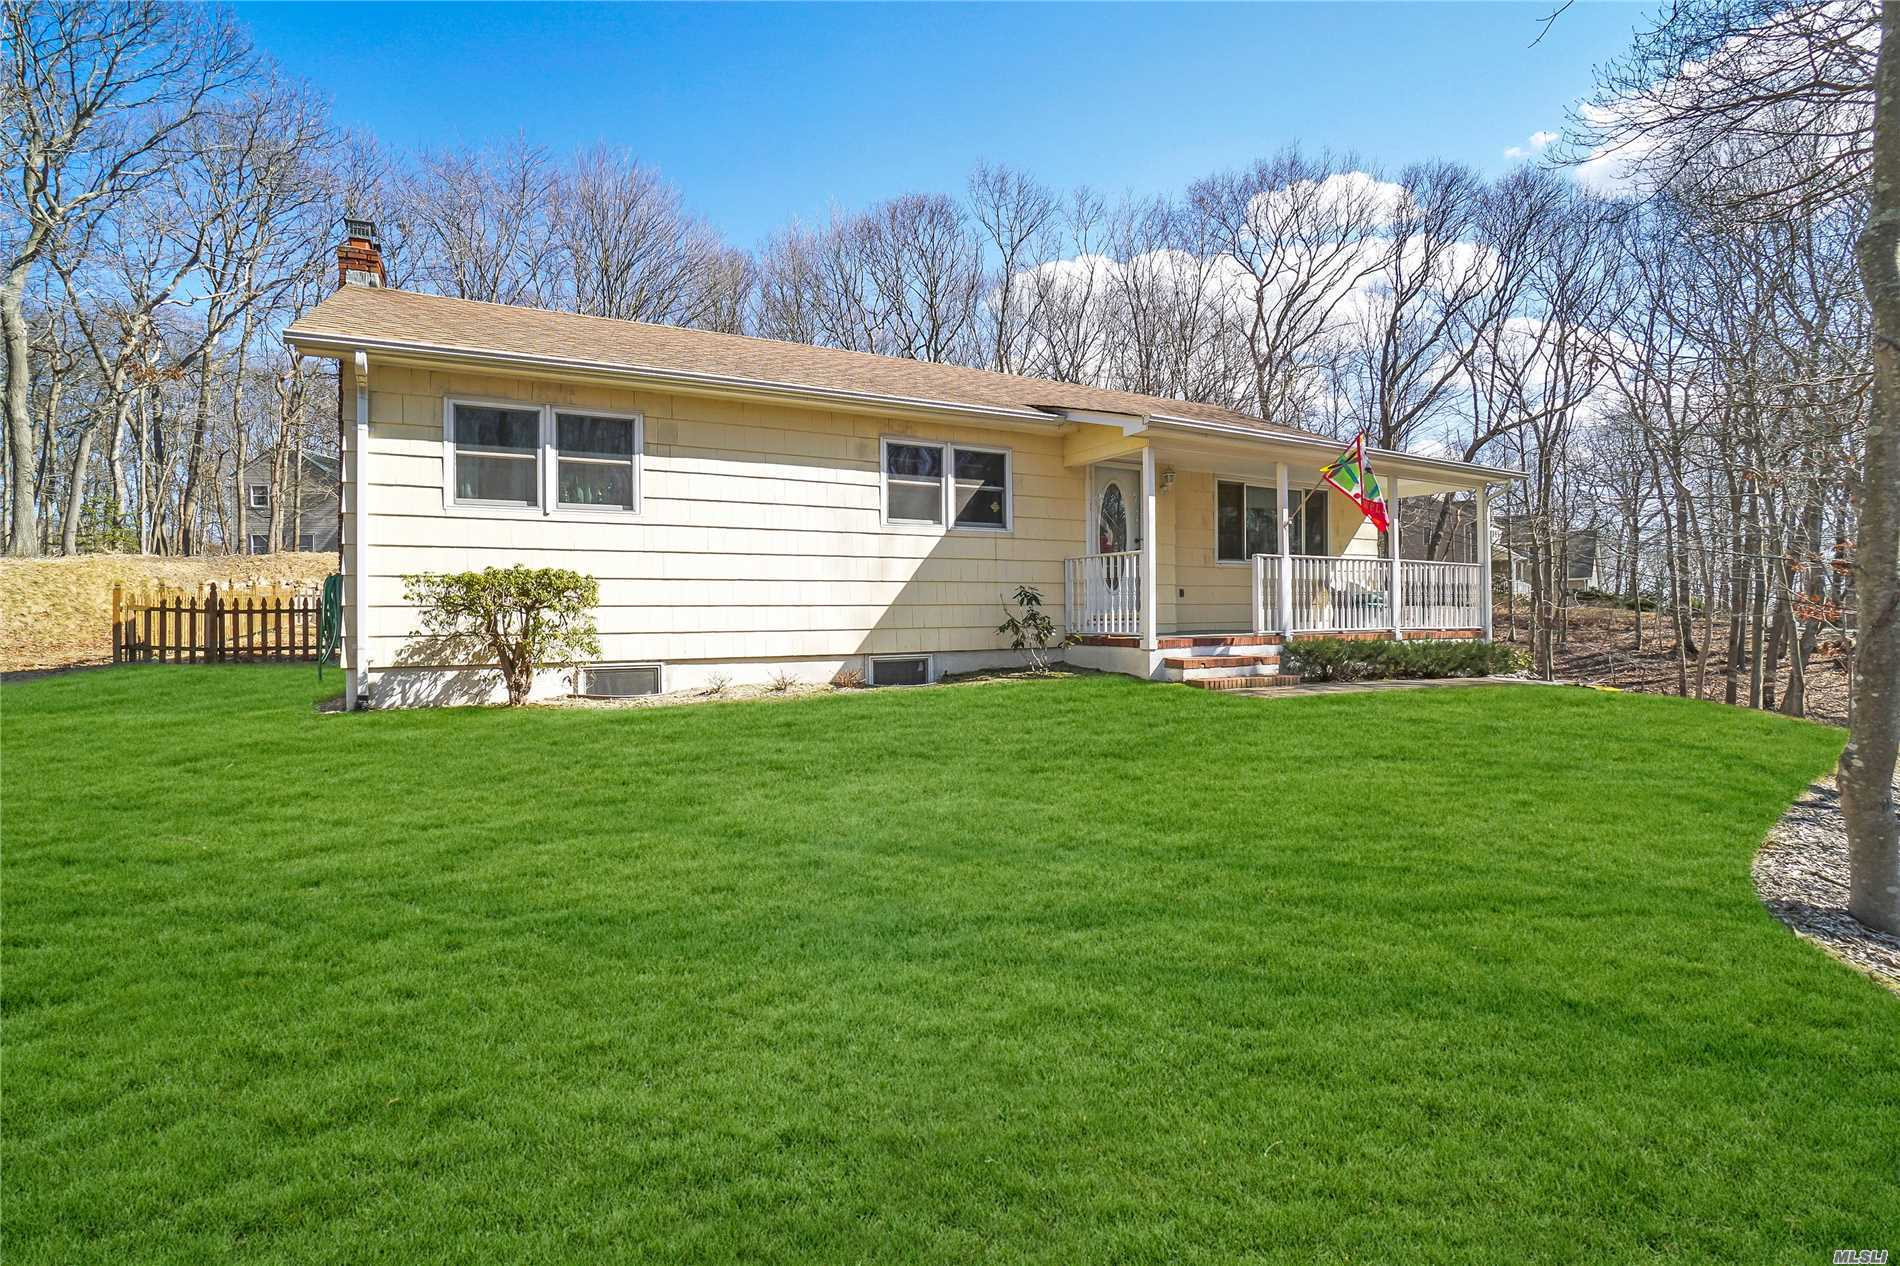 Secluded Ranch On A Shy Acre IN PRIVATE, N. Wading River Location-HARDWOOD FLOORS THROUGHOUT-BRAND NEW GRANITE/MAPLE/S.S KITCHEN AND FRONT LOAD WASHER-2018 BELGIUM BLOCK DRIVEWAY-2017 NEW SEPTIC SYSTEM AND HOUSE INTERIOR PAINTED-2016 EXTENDED BACKYARD-NEW HEATING SYSTEM 2014-NEW WINDOWS 2008-2006 ROOF-200 Amp ELECTRIC-Finished Basement W/Full Bath & OUTSIDE AND INSIDE ENTRANCES-PRIVATE SERENE SETTING